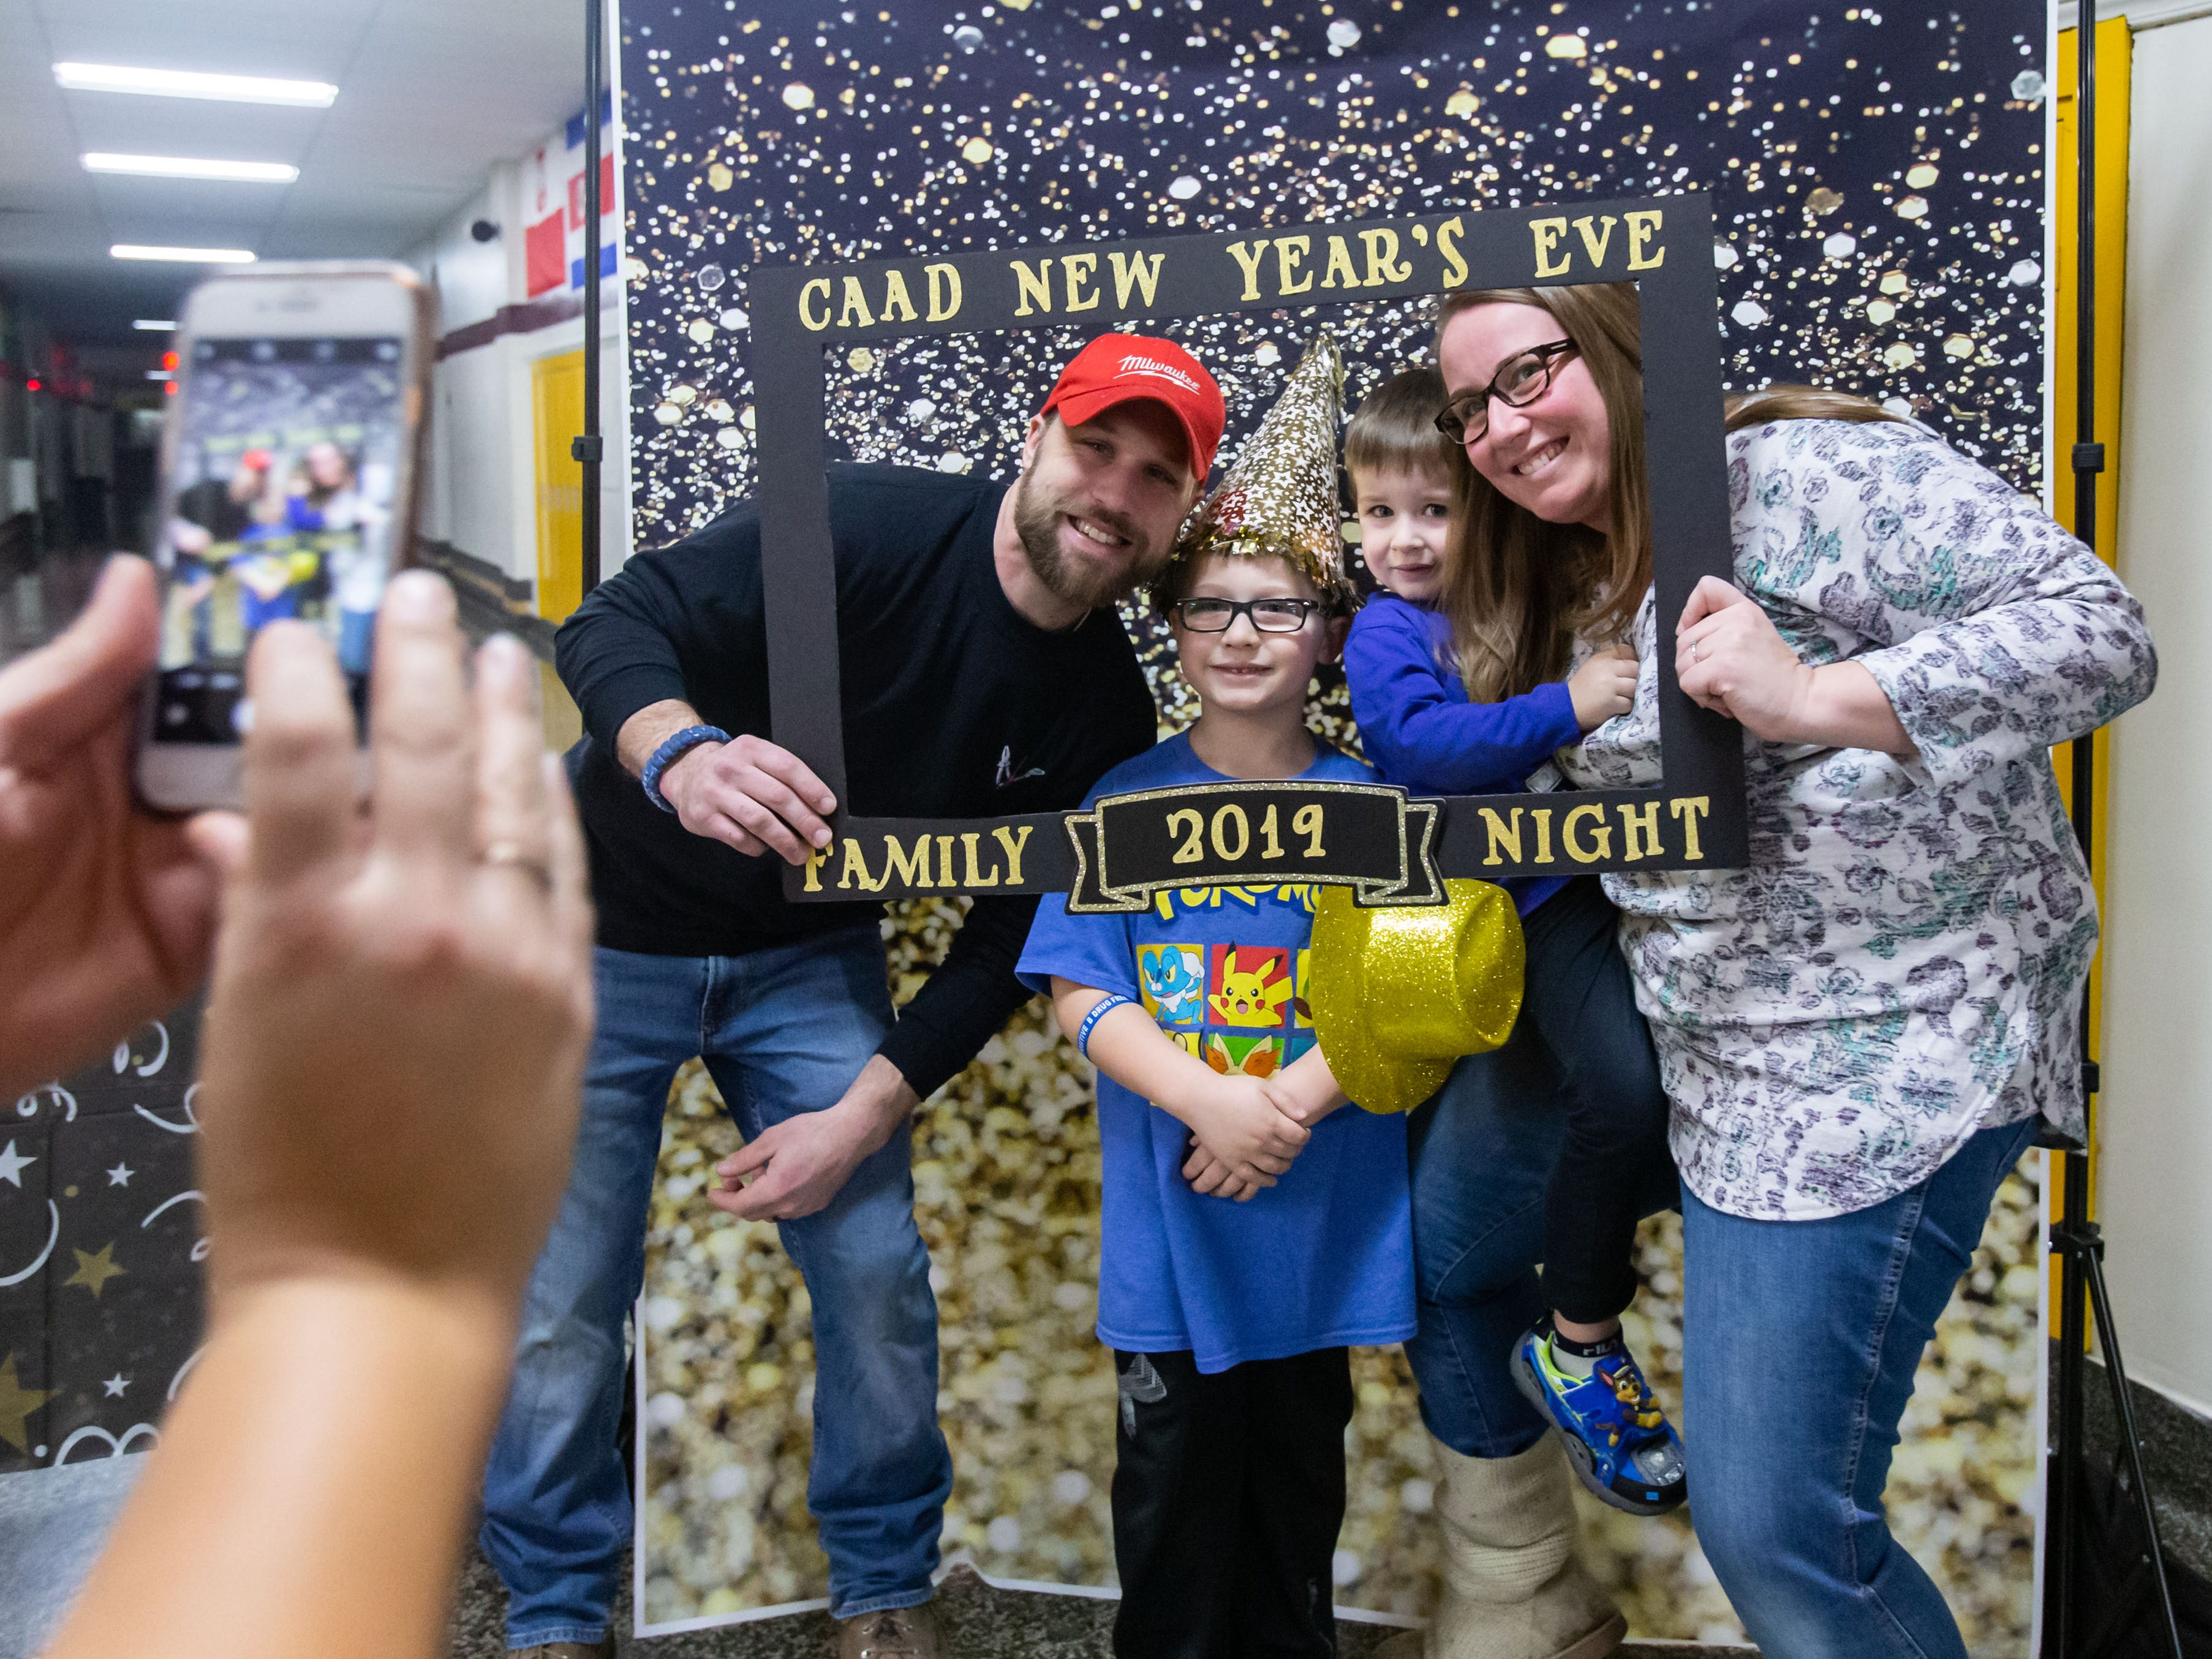 Members of the Roeder family (from left) Erich, Easton, 6, Colton, 3, and Ashley, from West Allis, pose for a photo during the New Year's Eve Family Night at West Allis Central High School hosted by CAAD - West Allis (the West Allis-West Milwaukee Community Alliance Against Drugs) on Monday evening, Dec. 31, 2018. The event featured games, inflatables, music, swimming, a balloon drop and more.